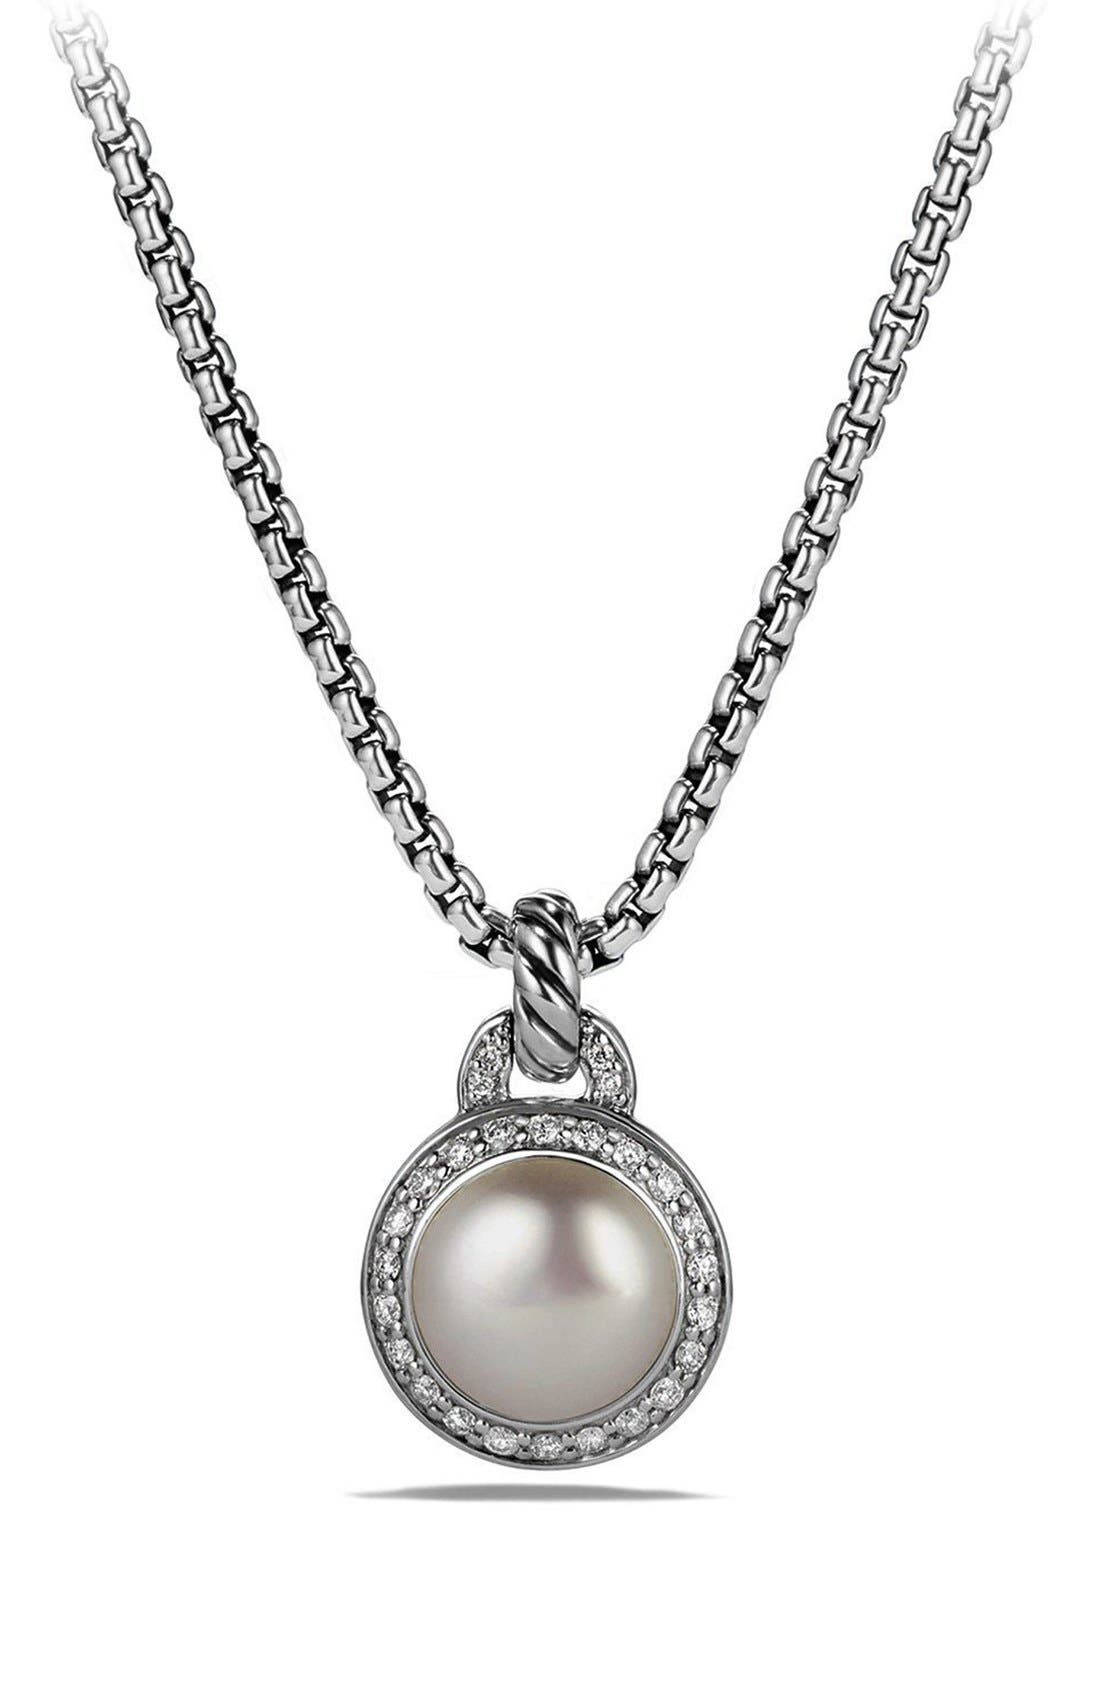 'Cerise' Petite Cerise Pendant Necklace with Pearl and Diamonds,                         Main,                         color, SILVER/ PEARL